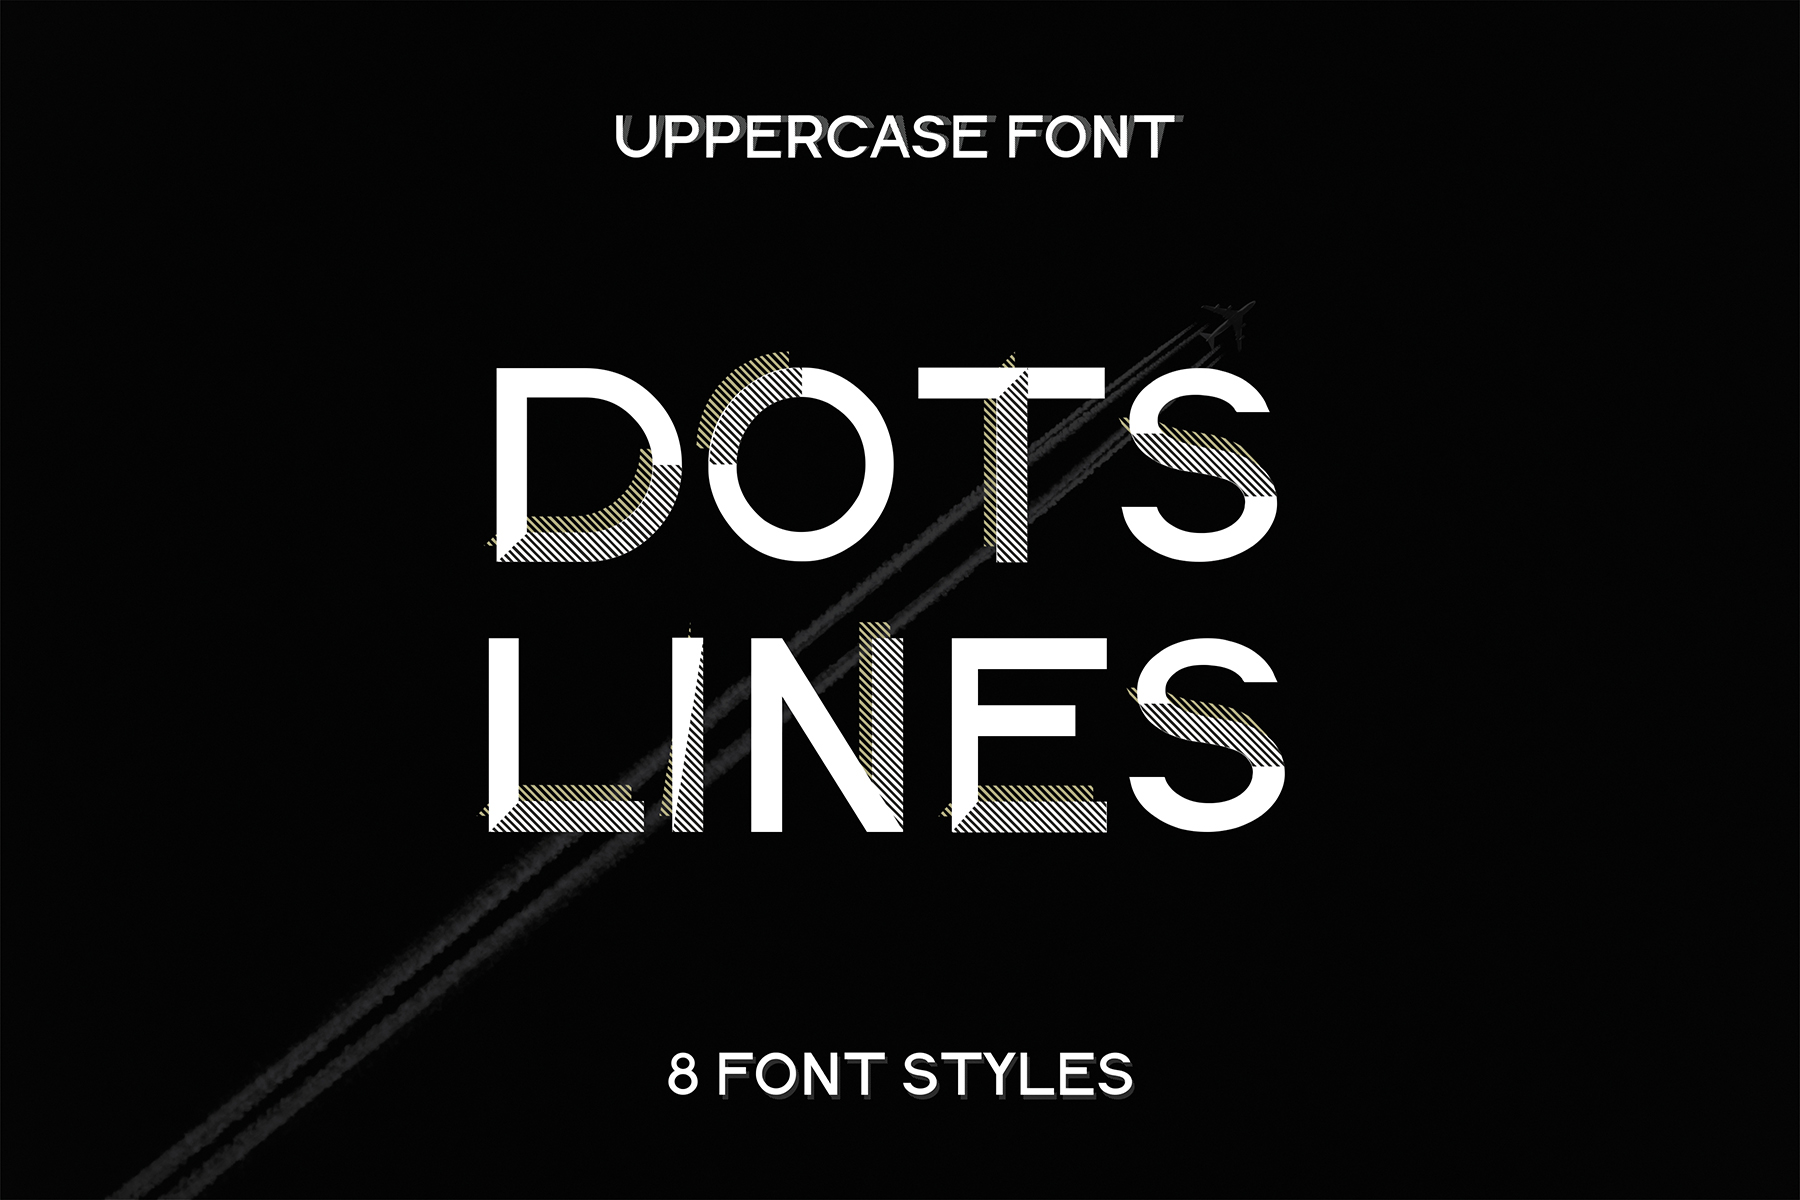 DOTS & LINES uppercase modern font example image 2